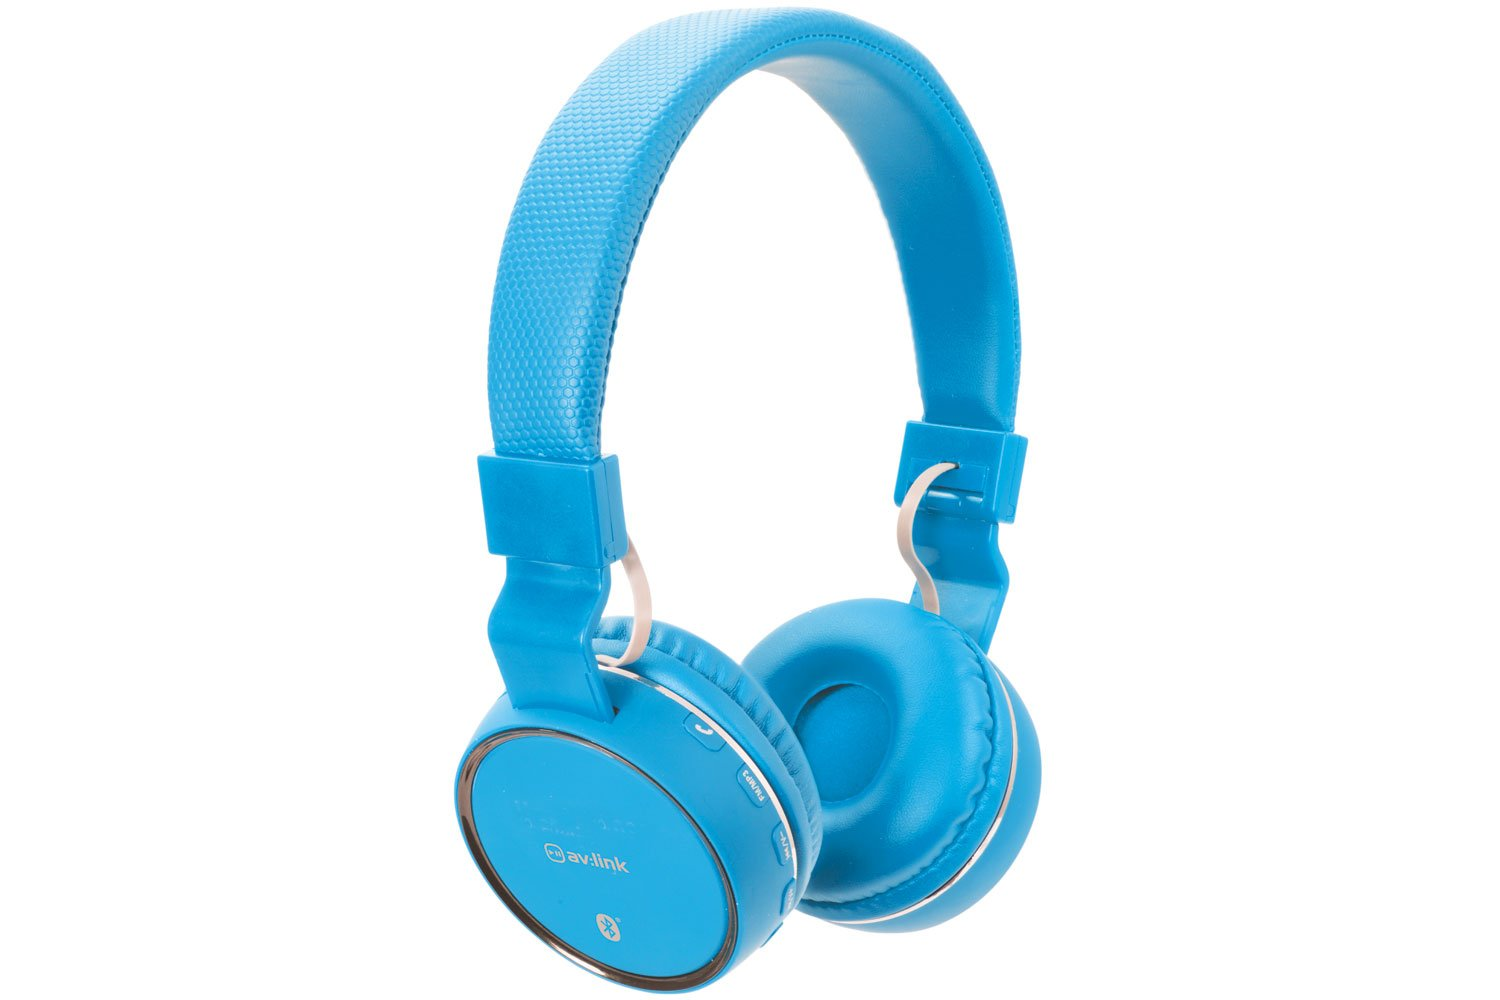 Blue Wireless Bluetooth Headphones - Built-in Microphone ...